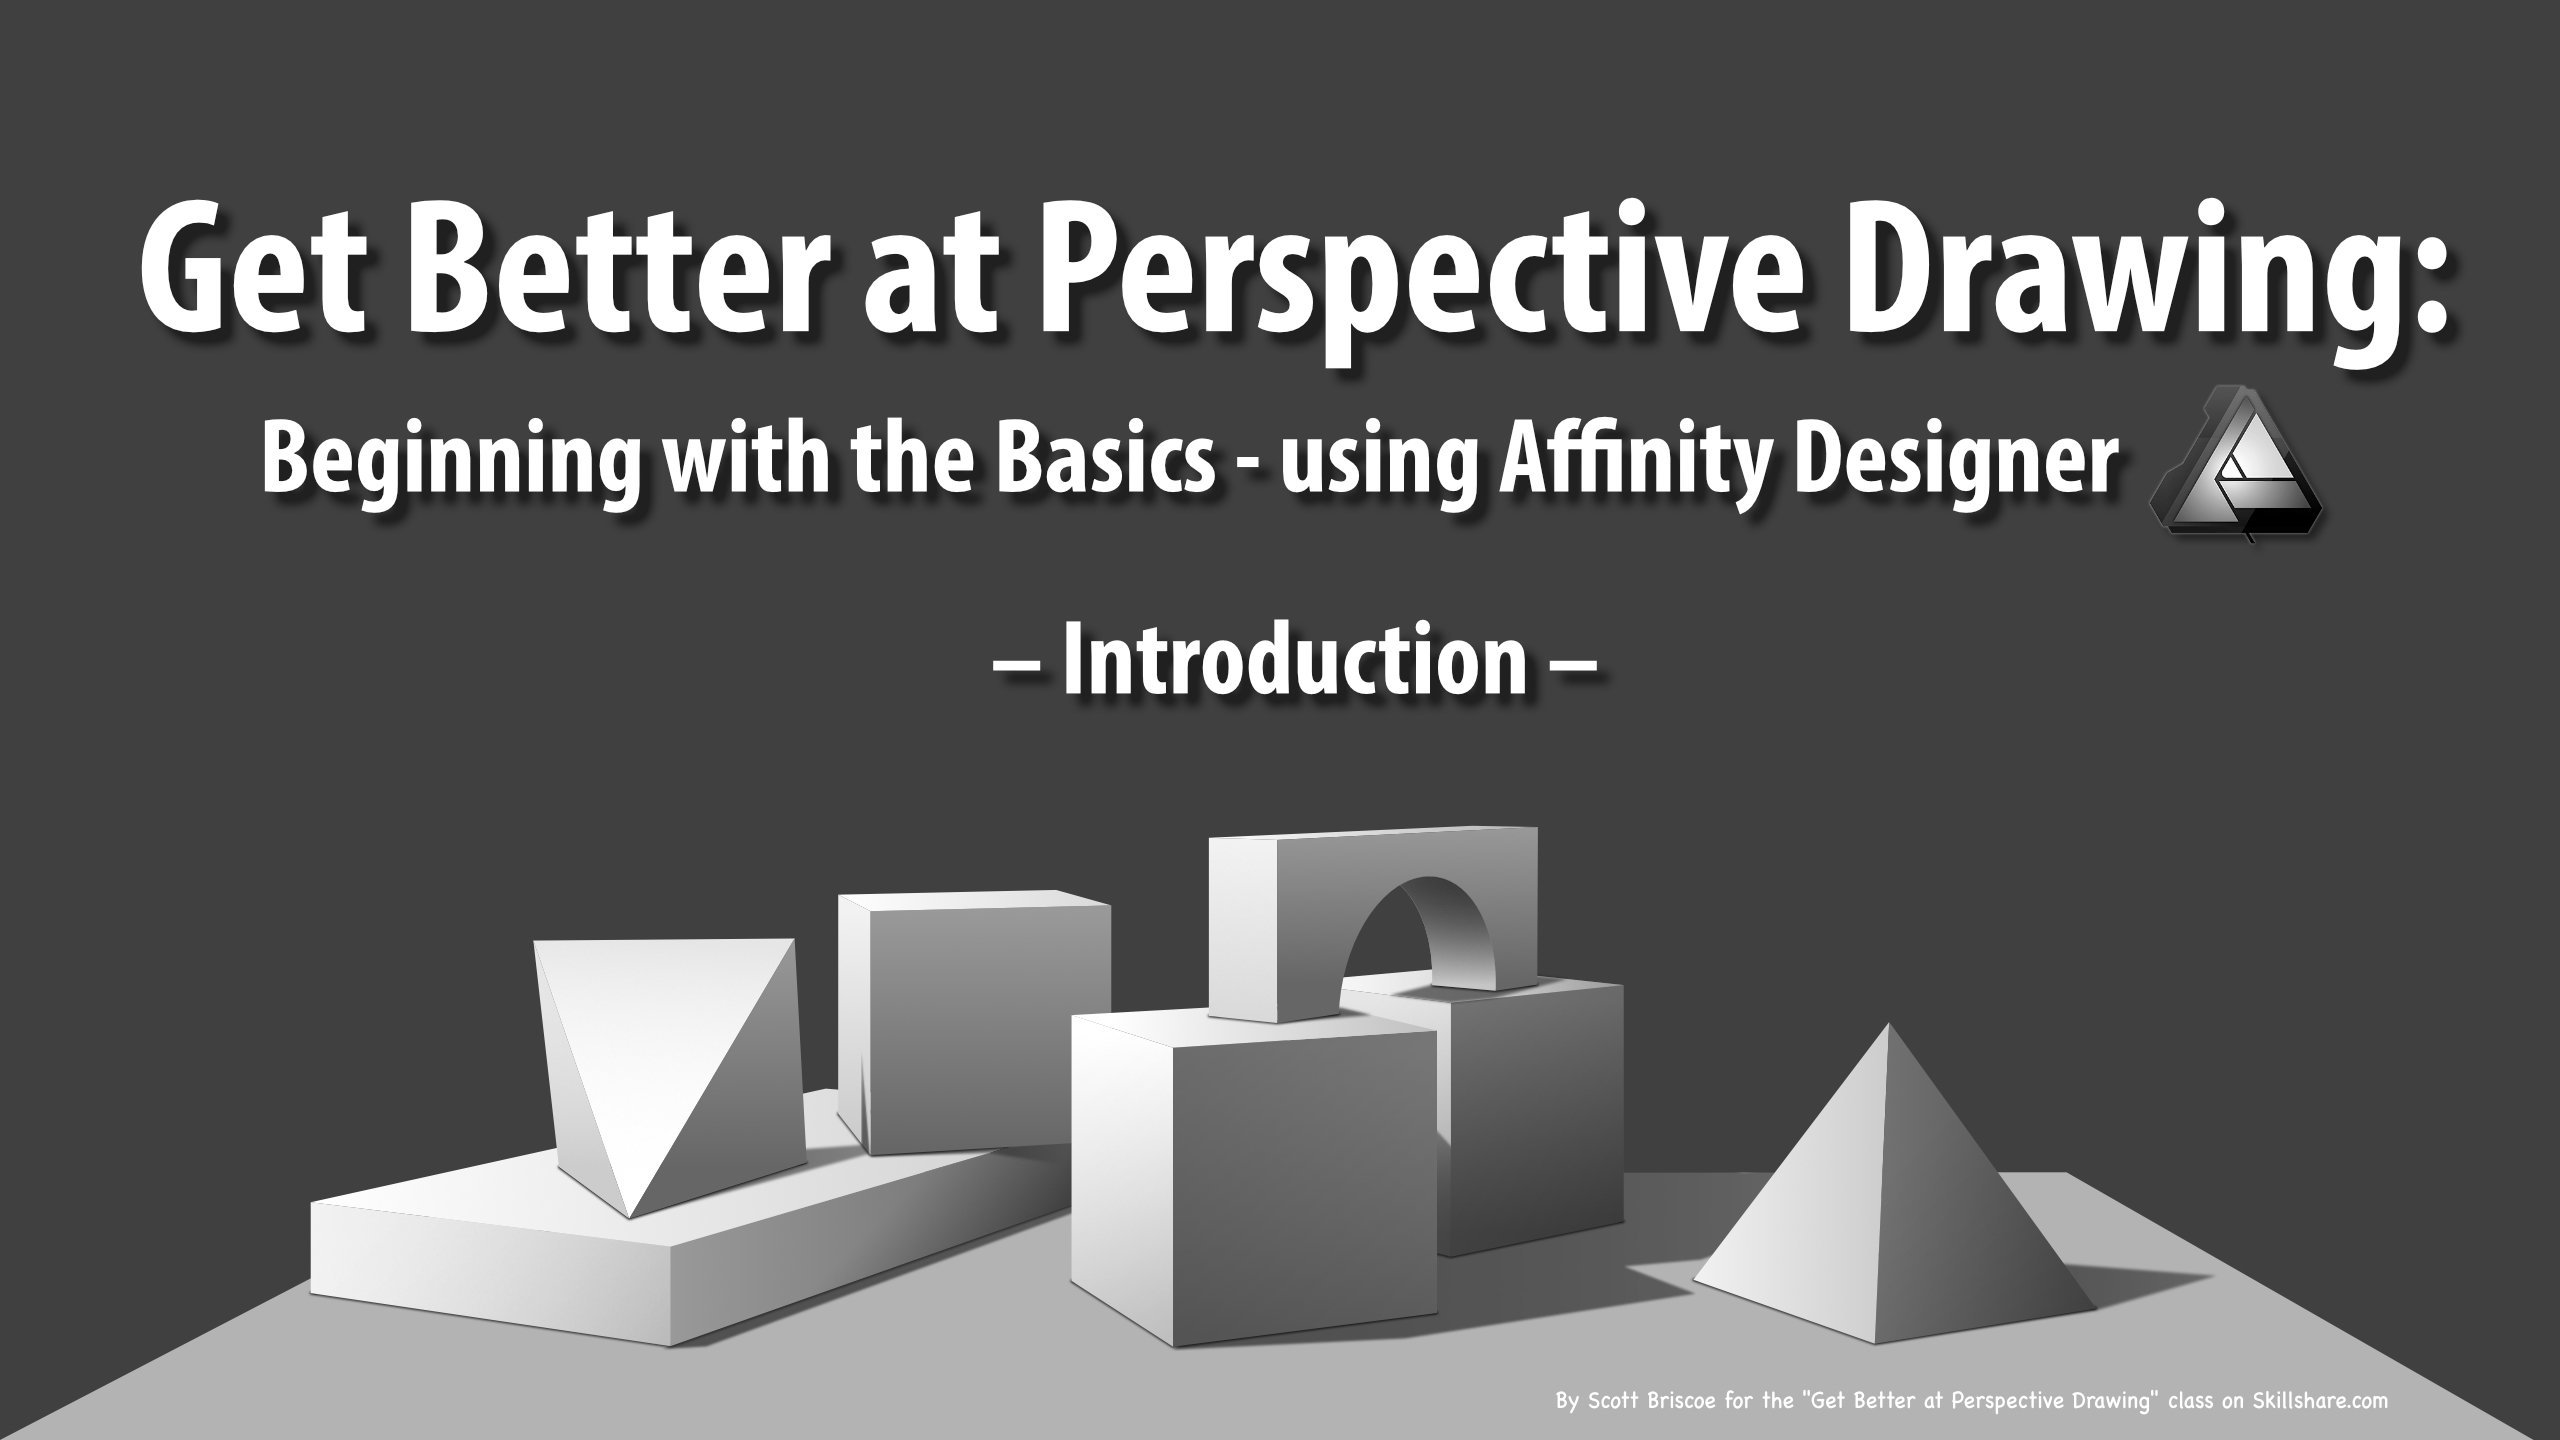 Get Better at Perspective Drawing: Beginning with the Basics - using Affinity Designer